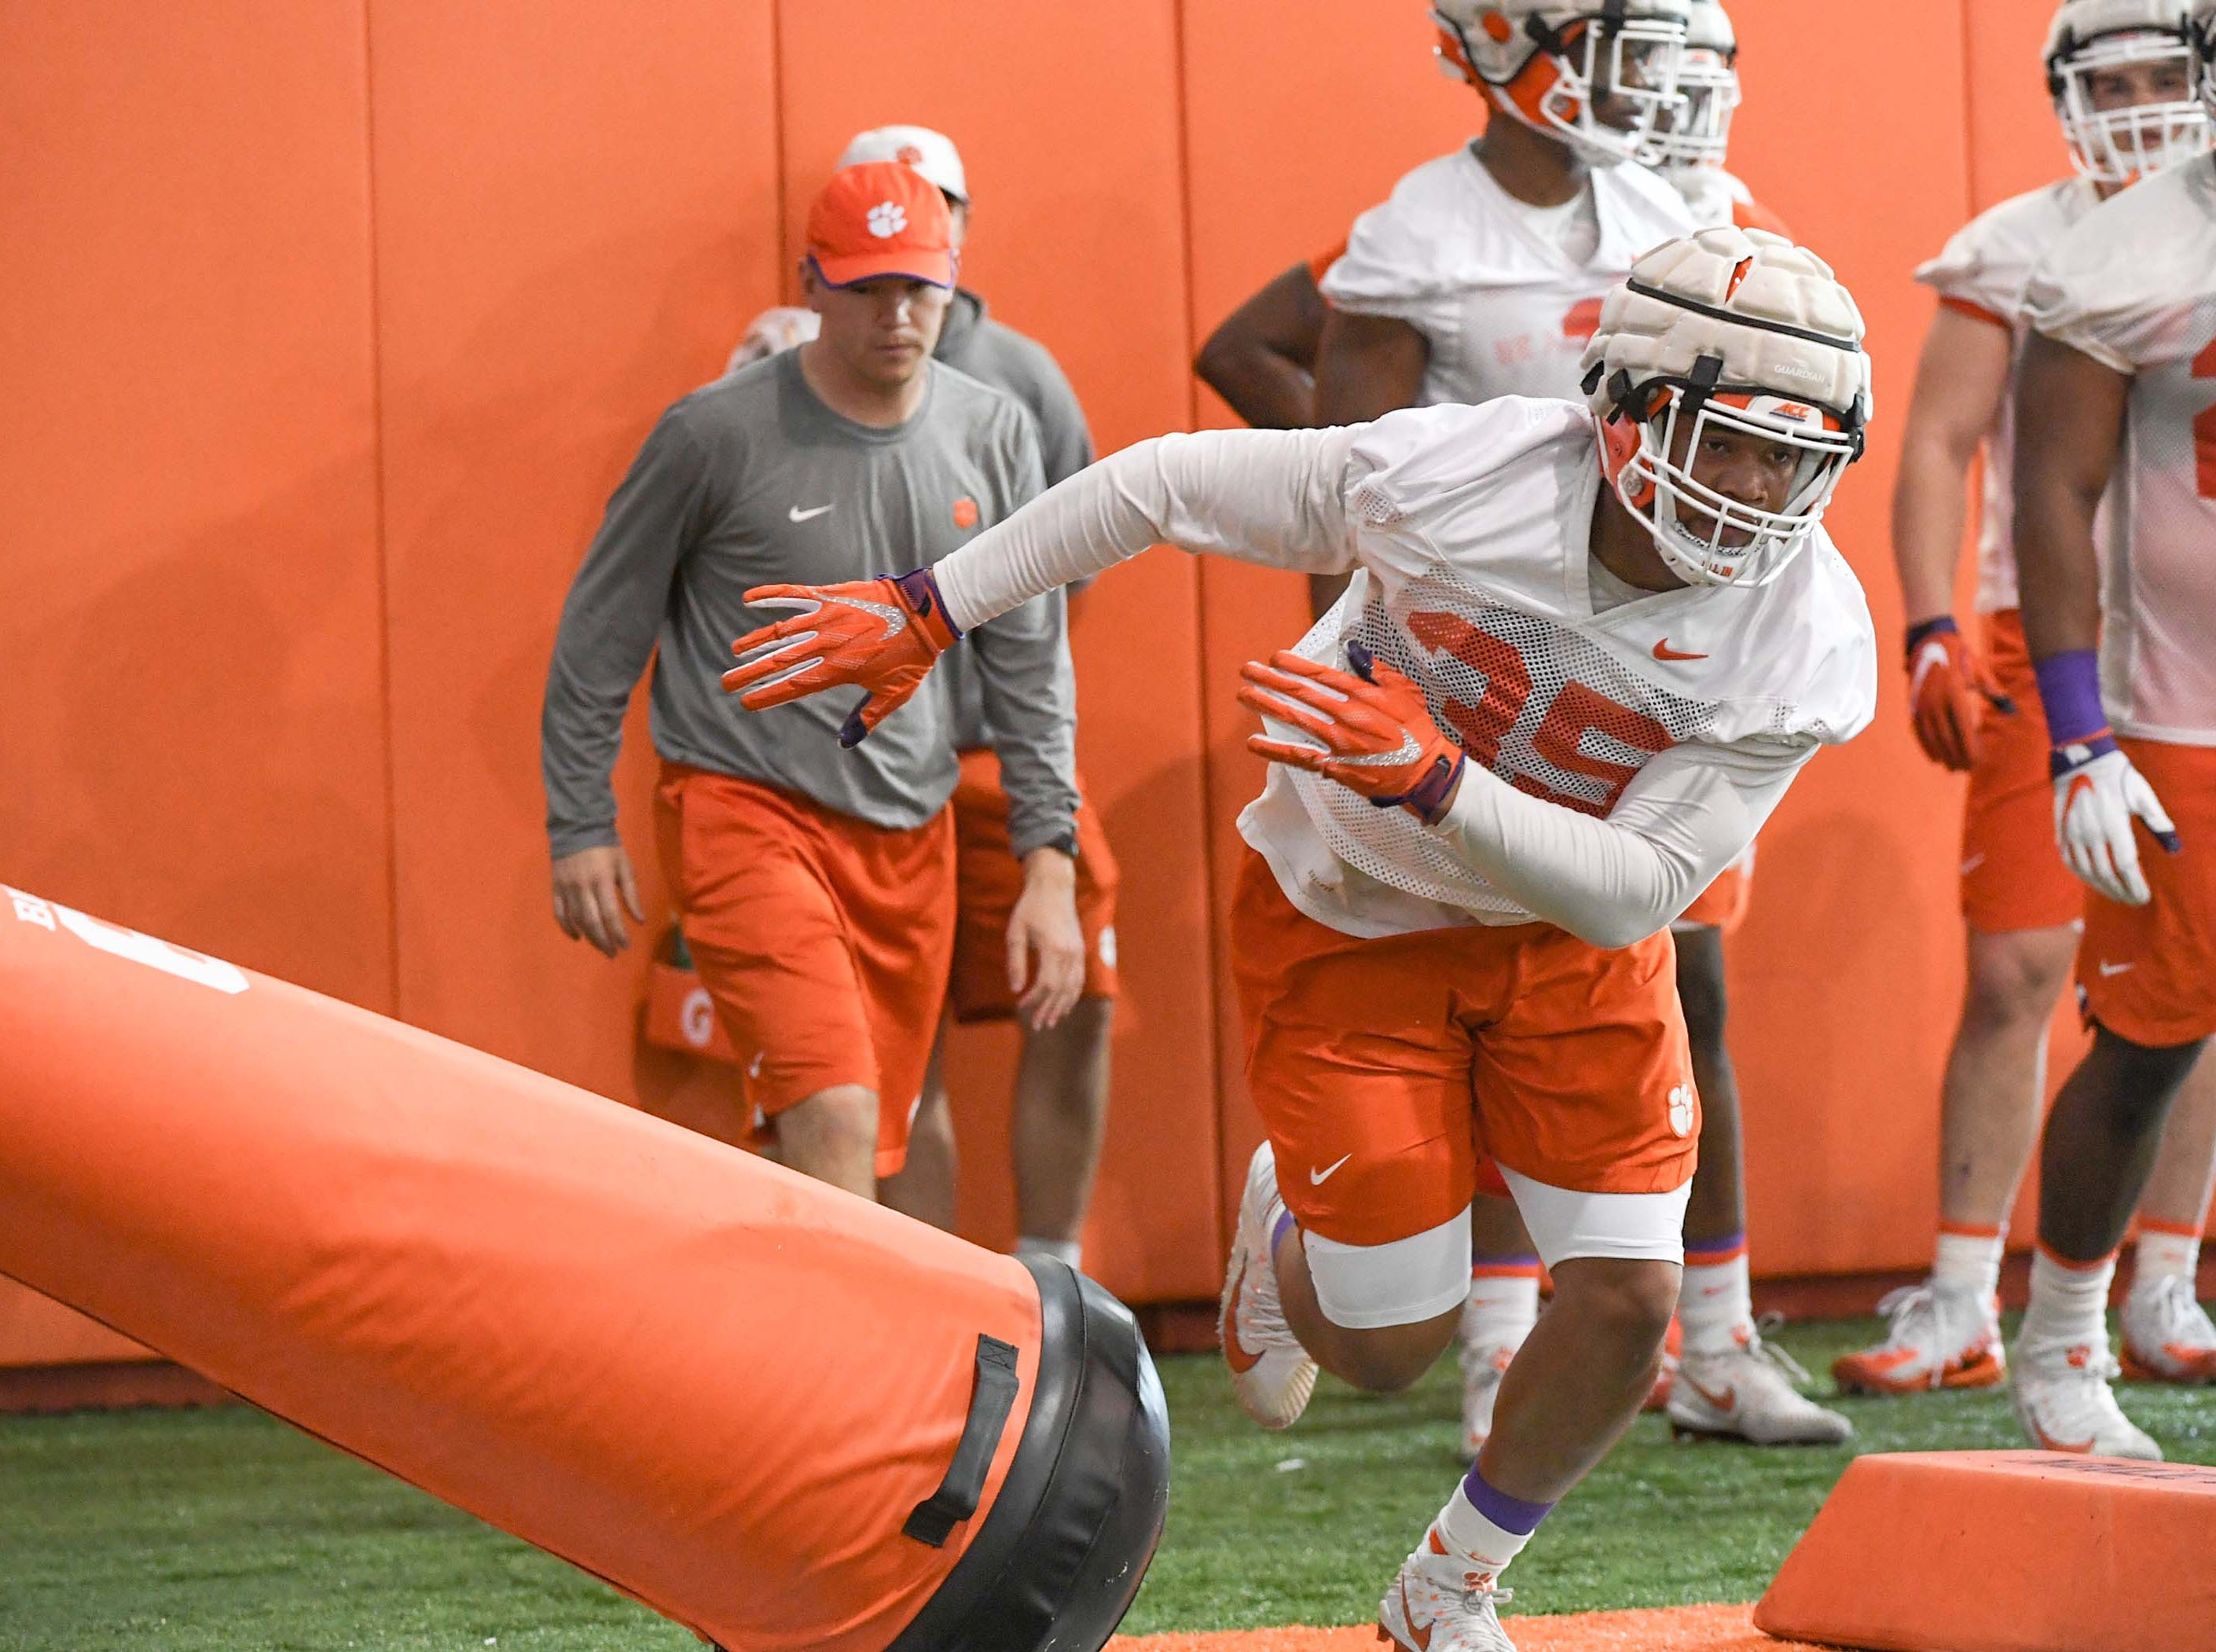 Clemson linebacker Justin Foster (35) during the first practice at the Clemson Indoor Practice Facility in Clemson Wednesday, February 27, 2019.